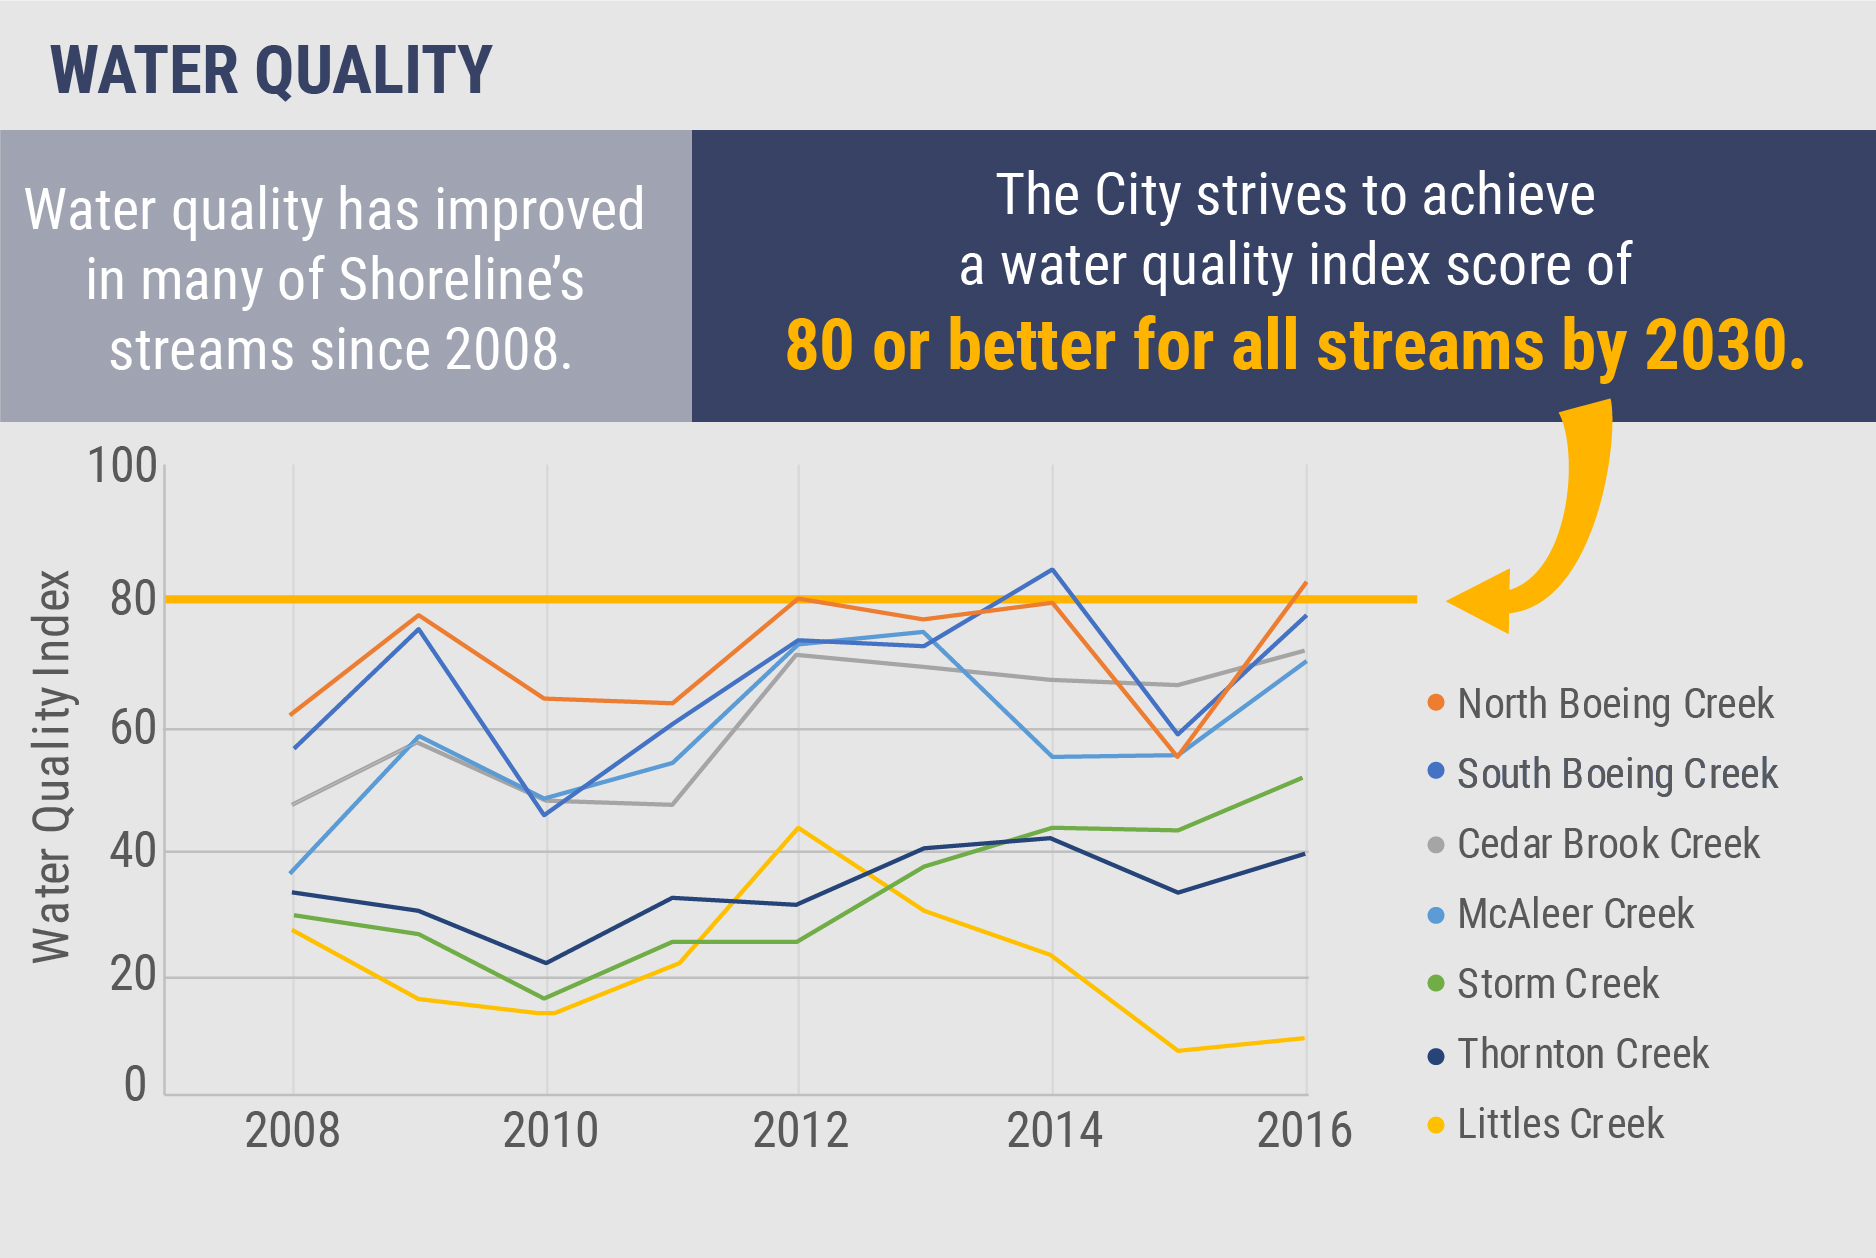 Water quality has improved in many of Shoreline's streams since 2008. City strives to achieve water quality index score of 80 or better for all streams by 2030.